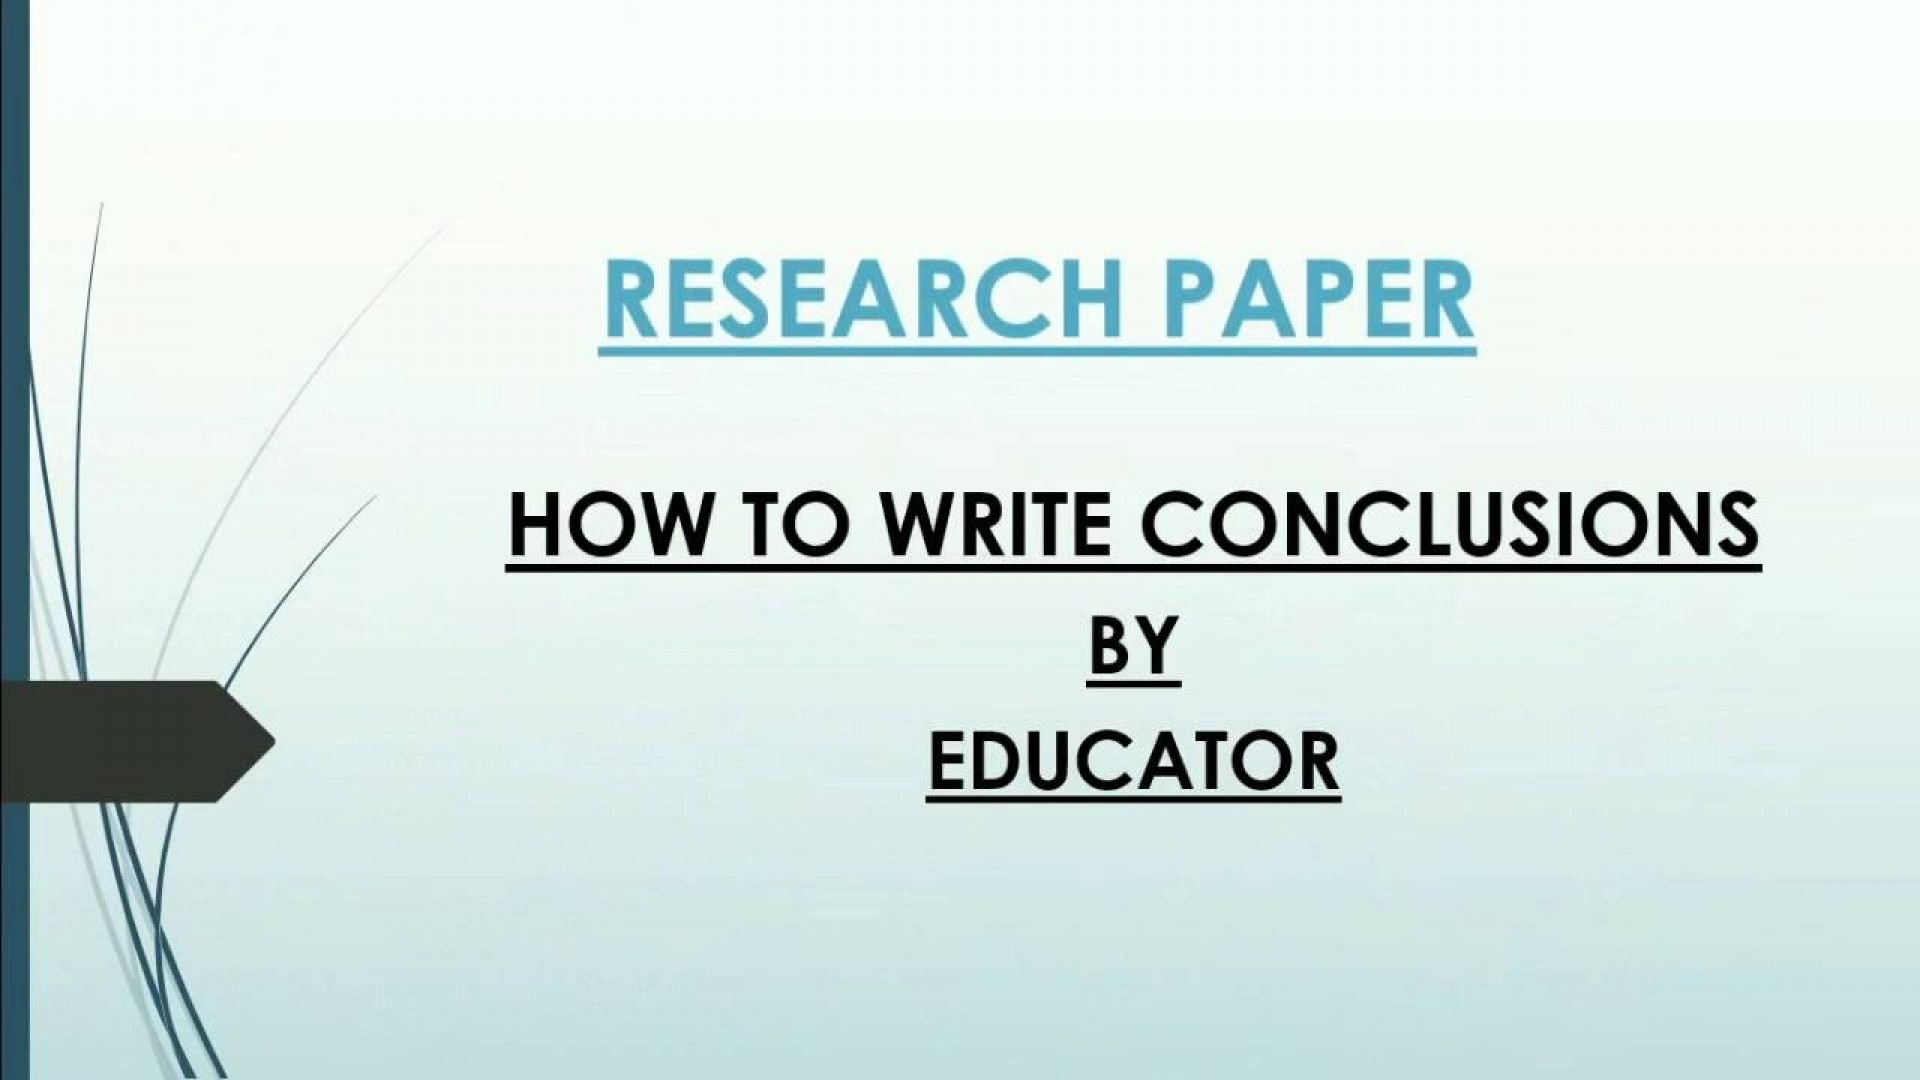 013 How To Write Conclusion For Research Paper Fearsome A Literary Science In Example 1920